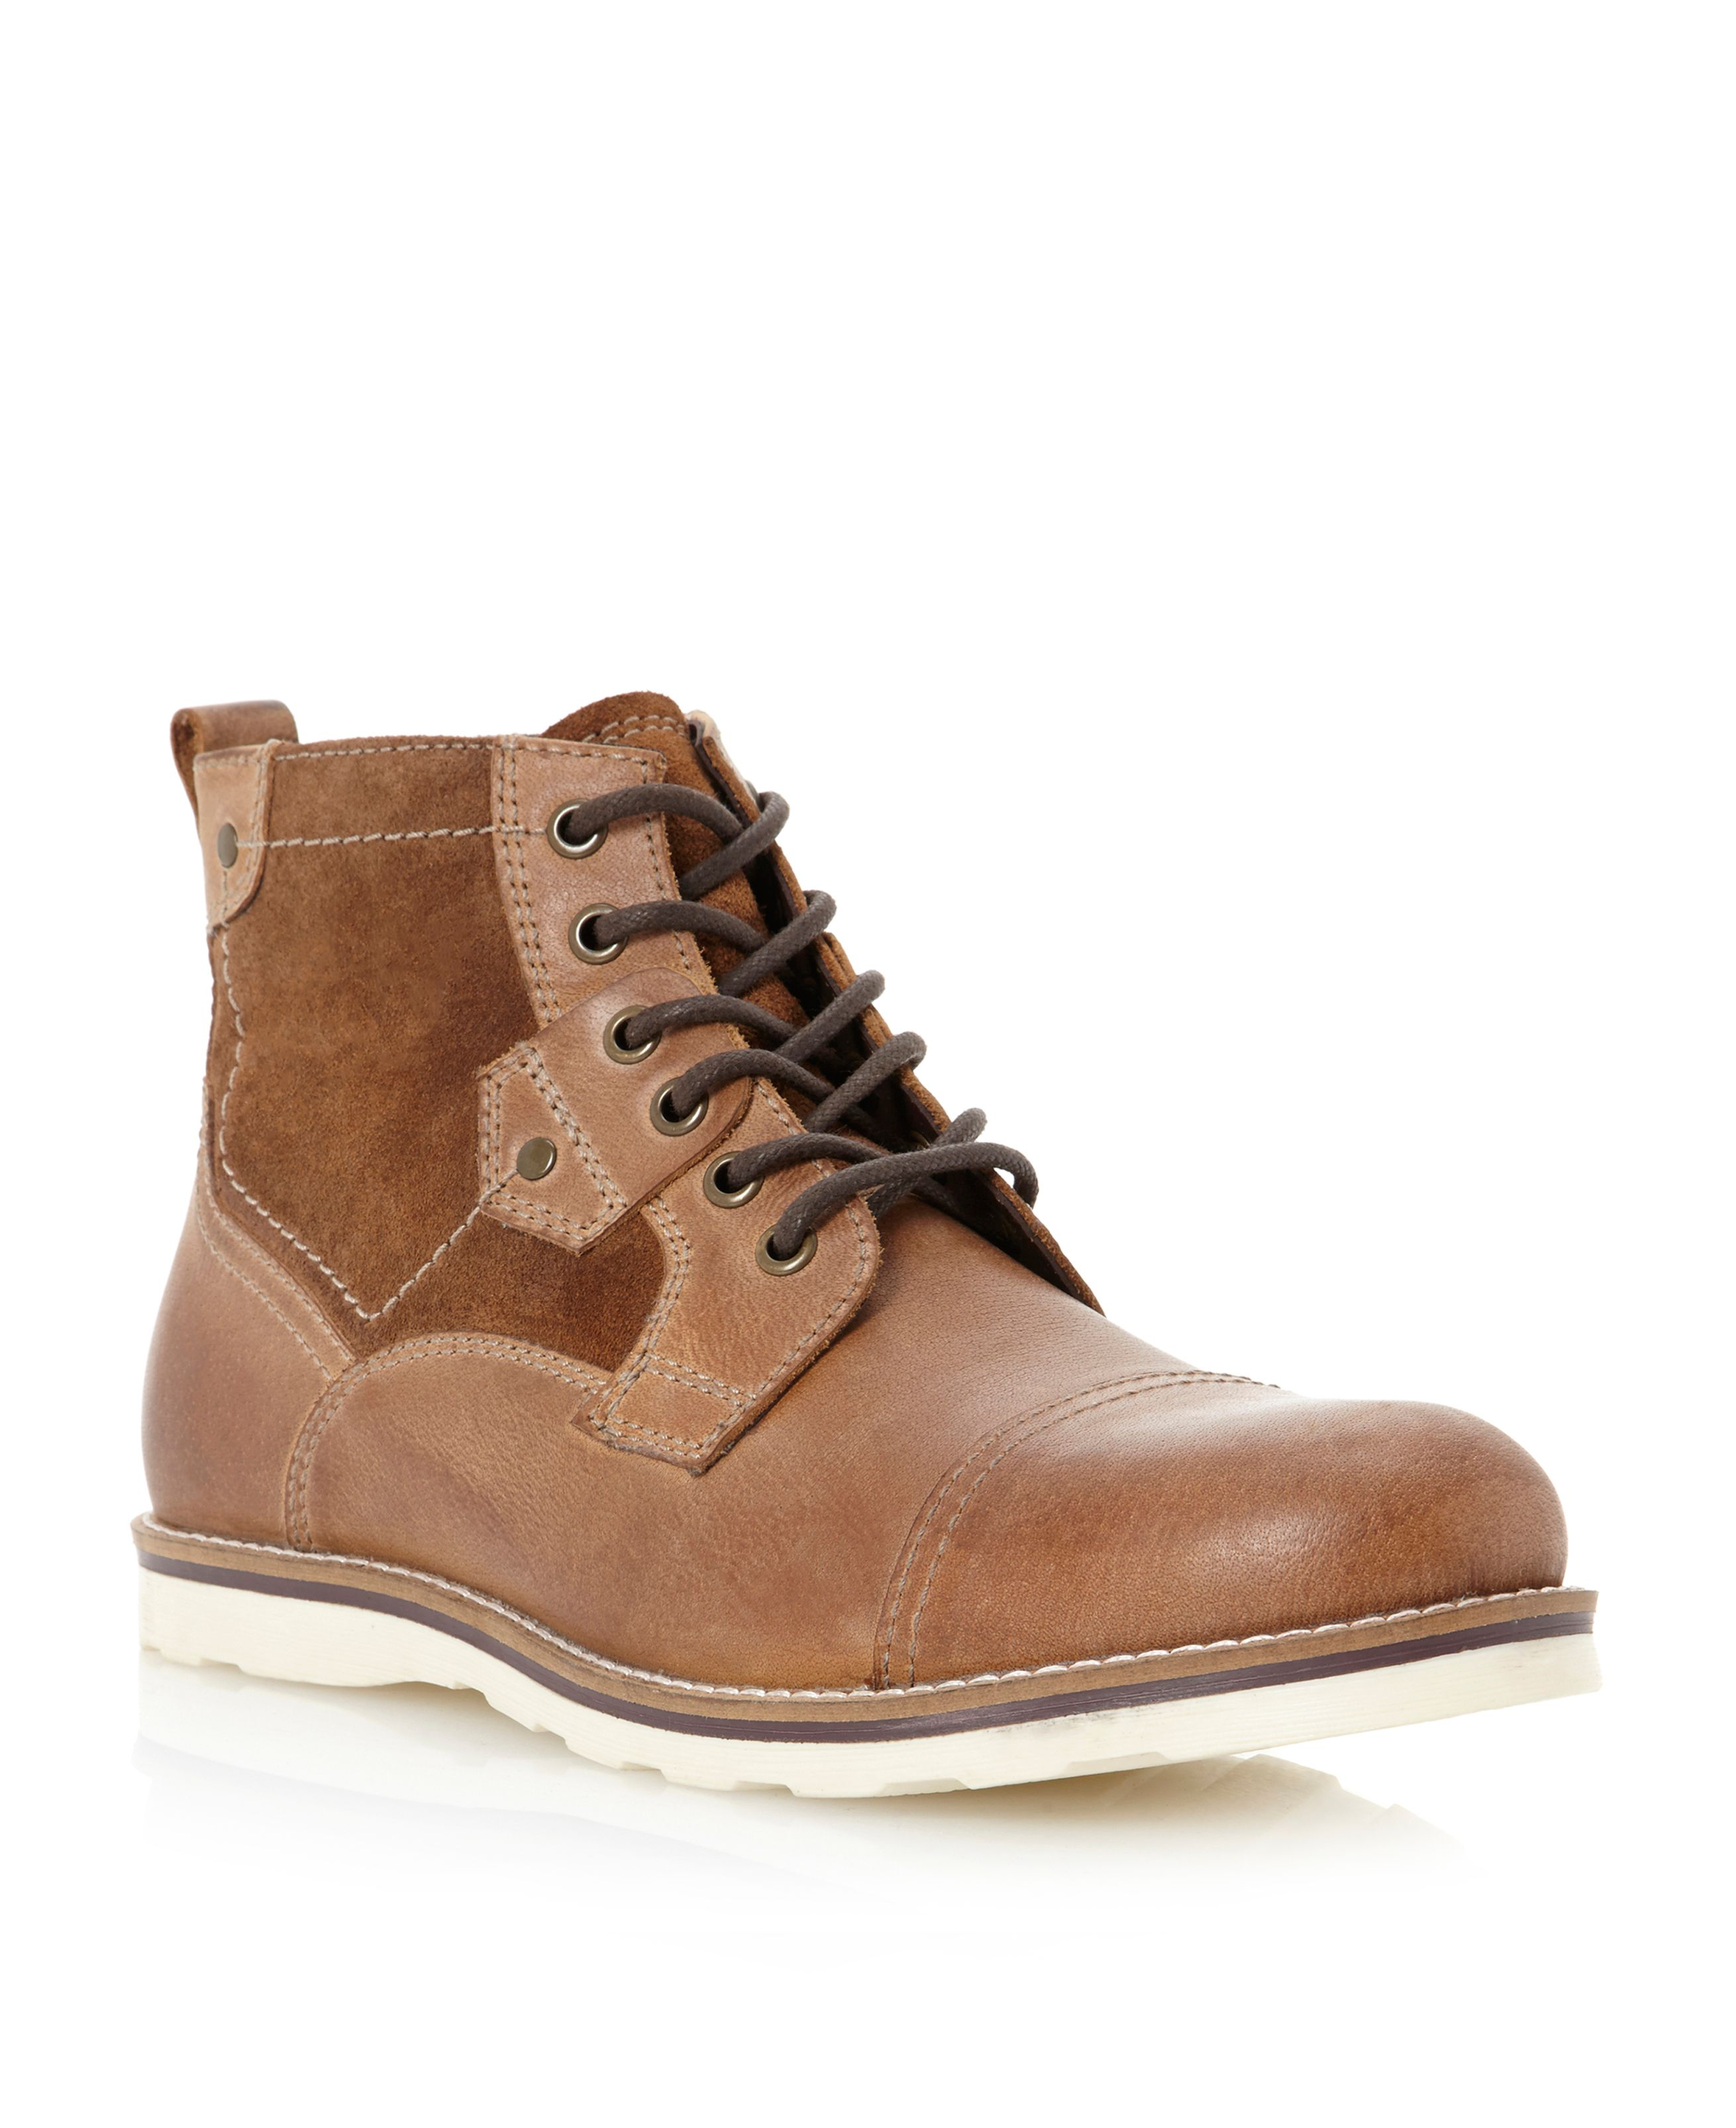 Chris contrast sole toecap boot